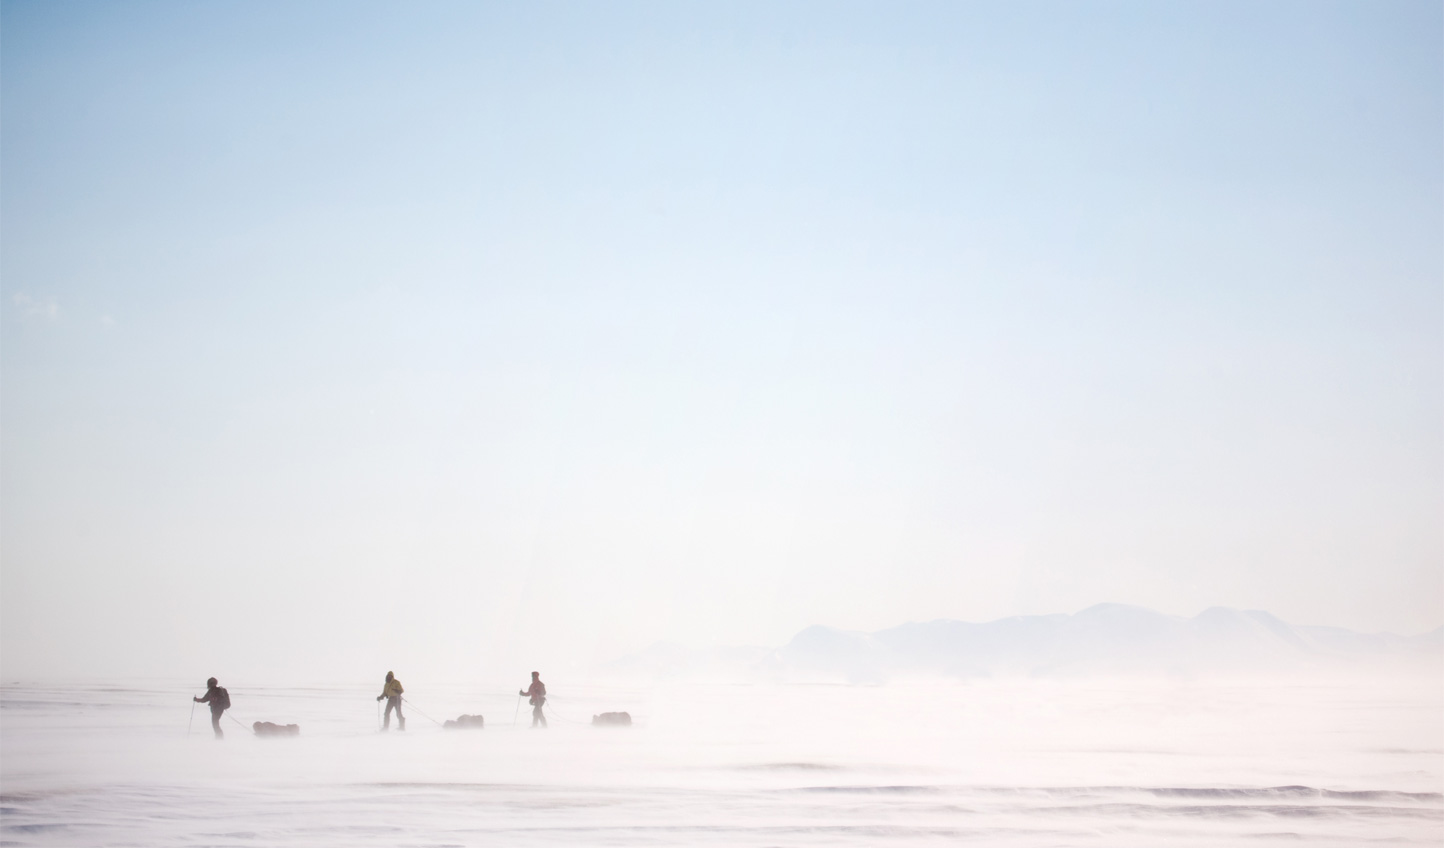 Master arctic survival and ski through snow storms